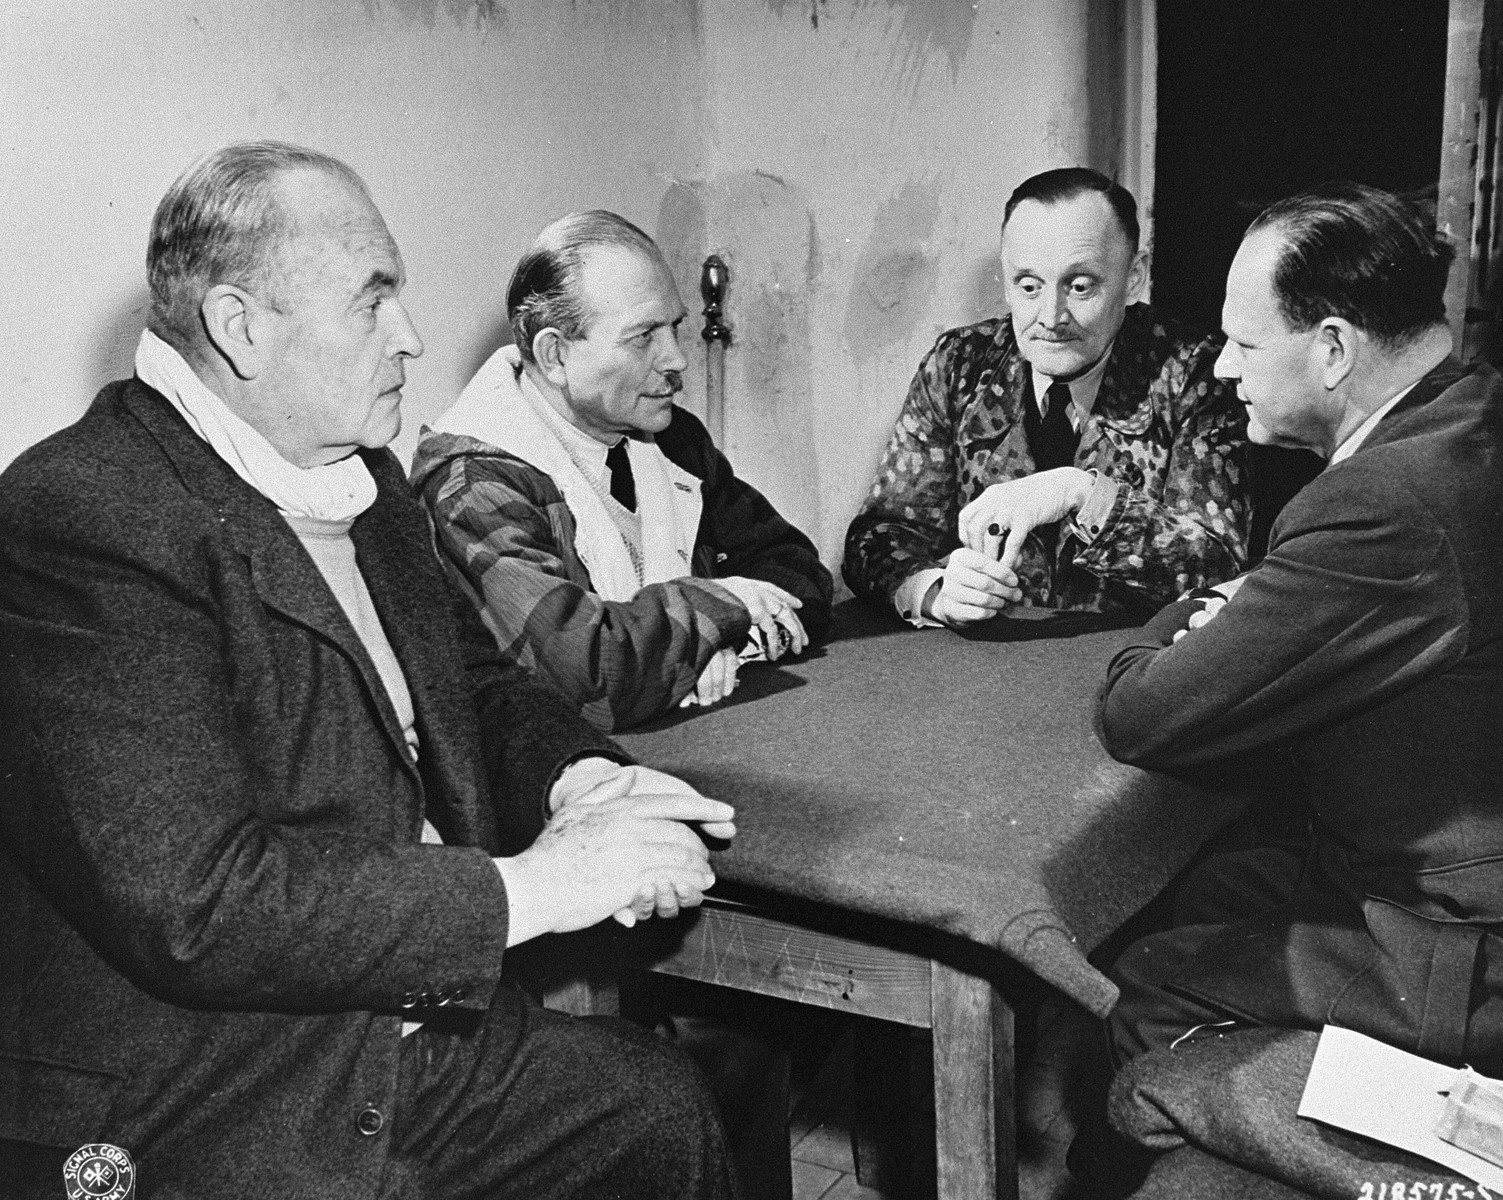 Former Luftflotte Commander Hugo Sperrle, former Chief of General Staff Heinz Guderian, former Air Force General Hans Jurgen Stumpff, and former Air Force Field Marshall Erhard Milch play cards until they are called to be witnesses at the International Military Tribunal trial of war criminals at Nuremberg.